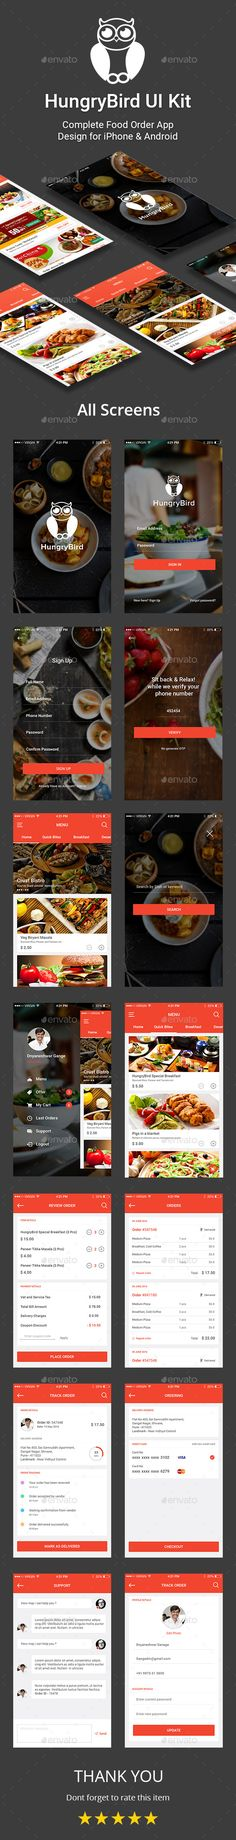 HungryBird - Food Order App UI Kit Template PSD. Download here: https://graphicriver.net/item/hungrybird-food-order-app-ui-kit/16261363?ref=ksioks